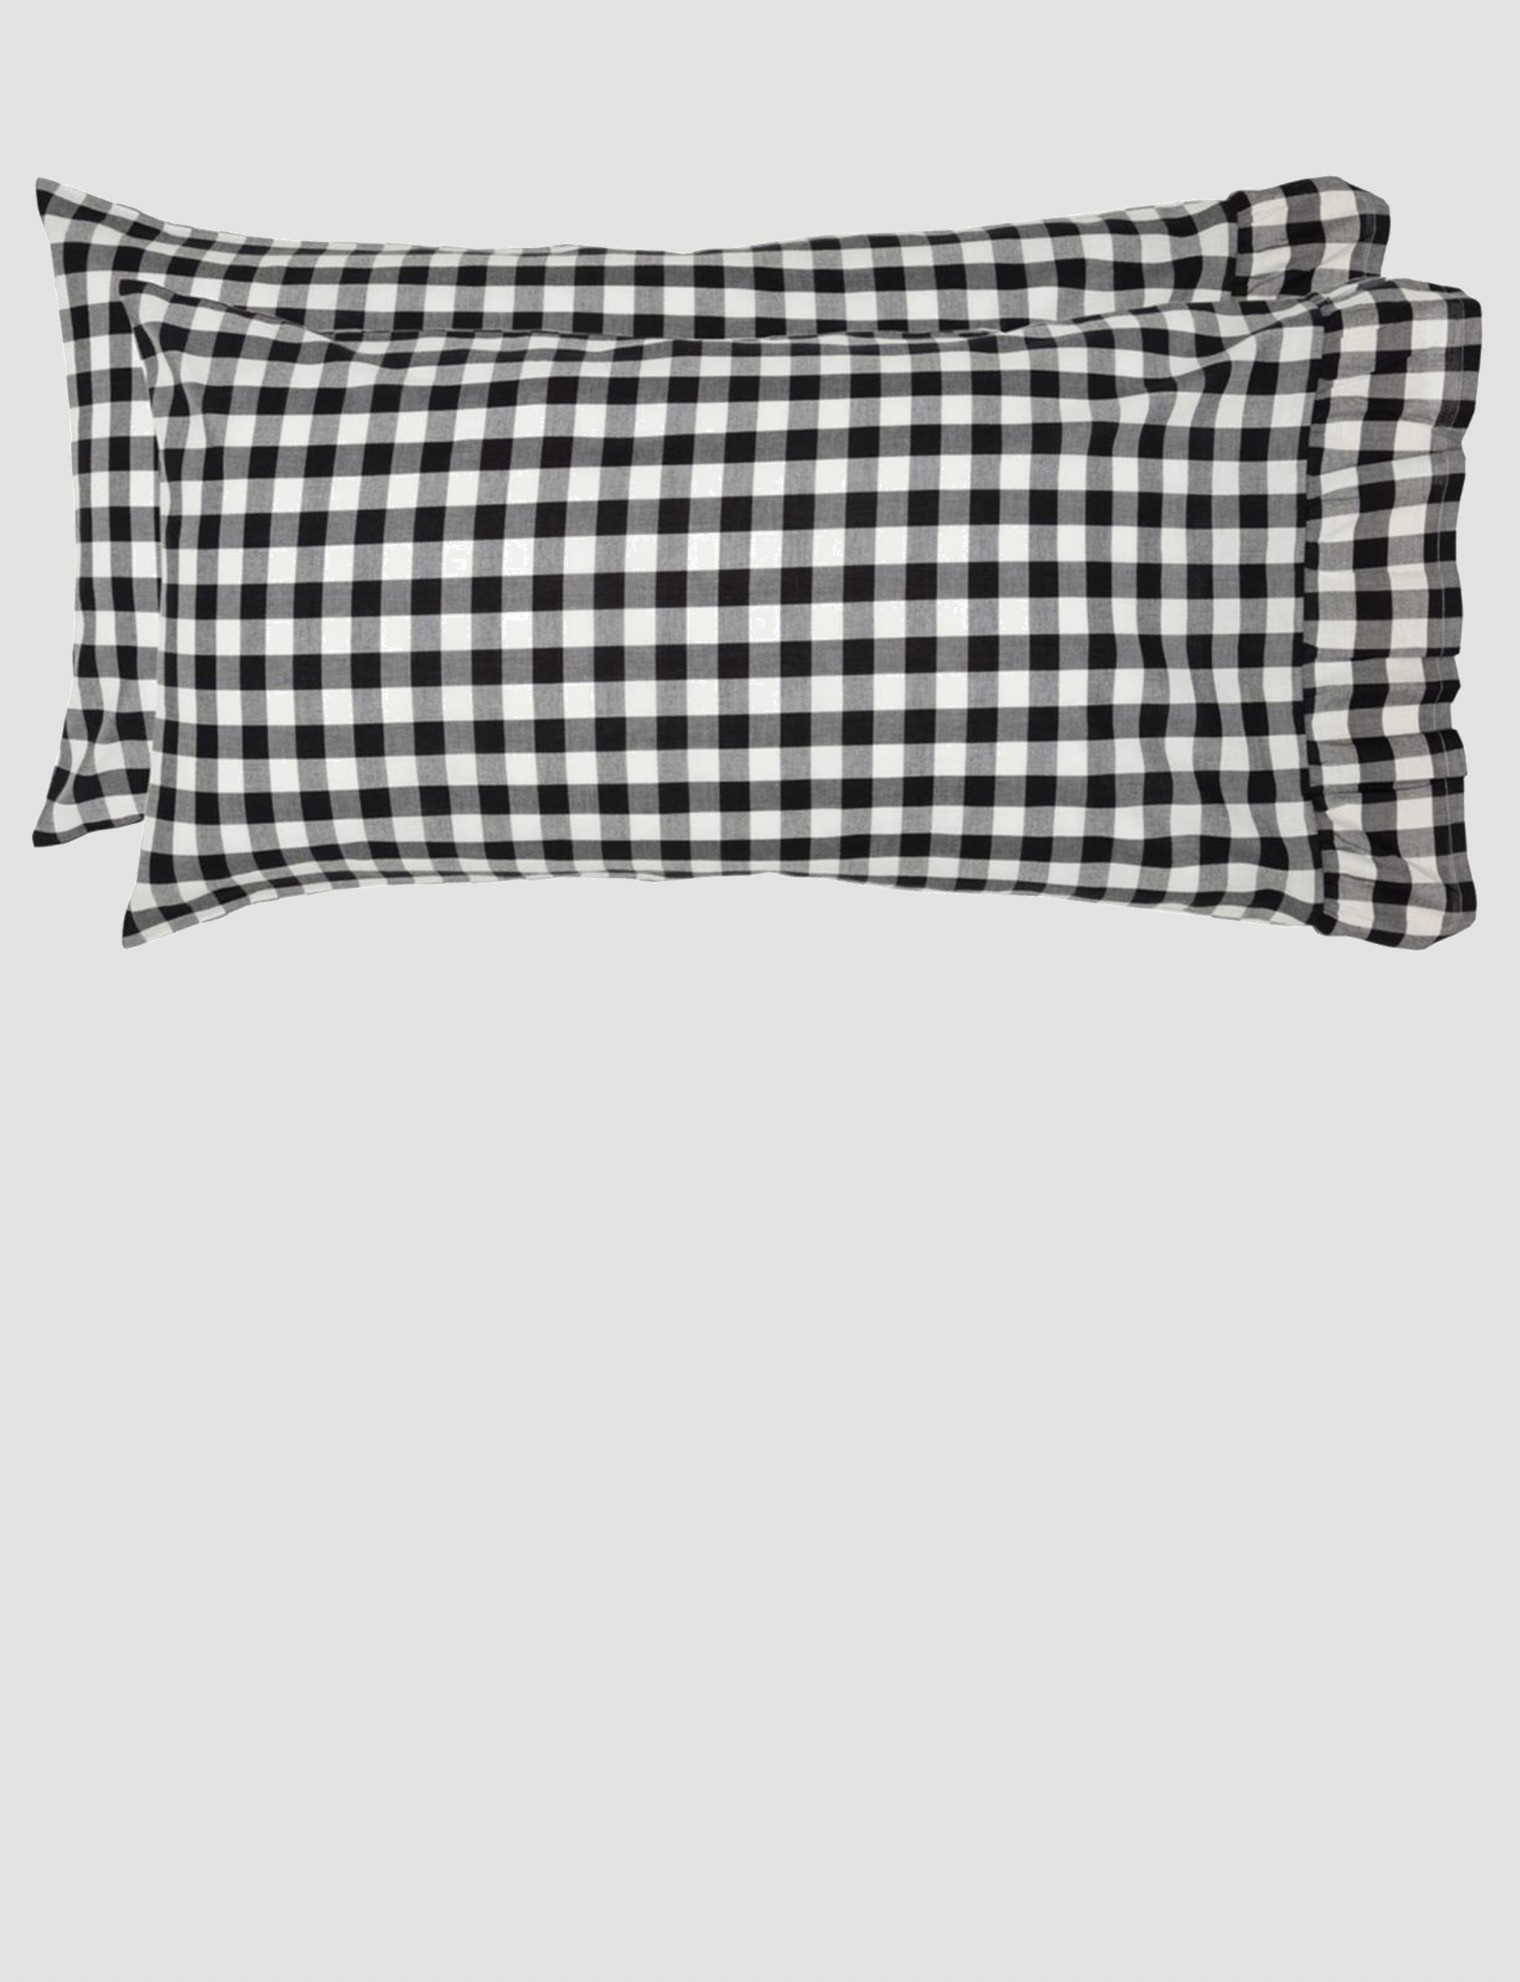 VHC Brands Annie Buffalo Black Check Pillow Cases Set of 2